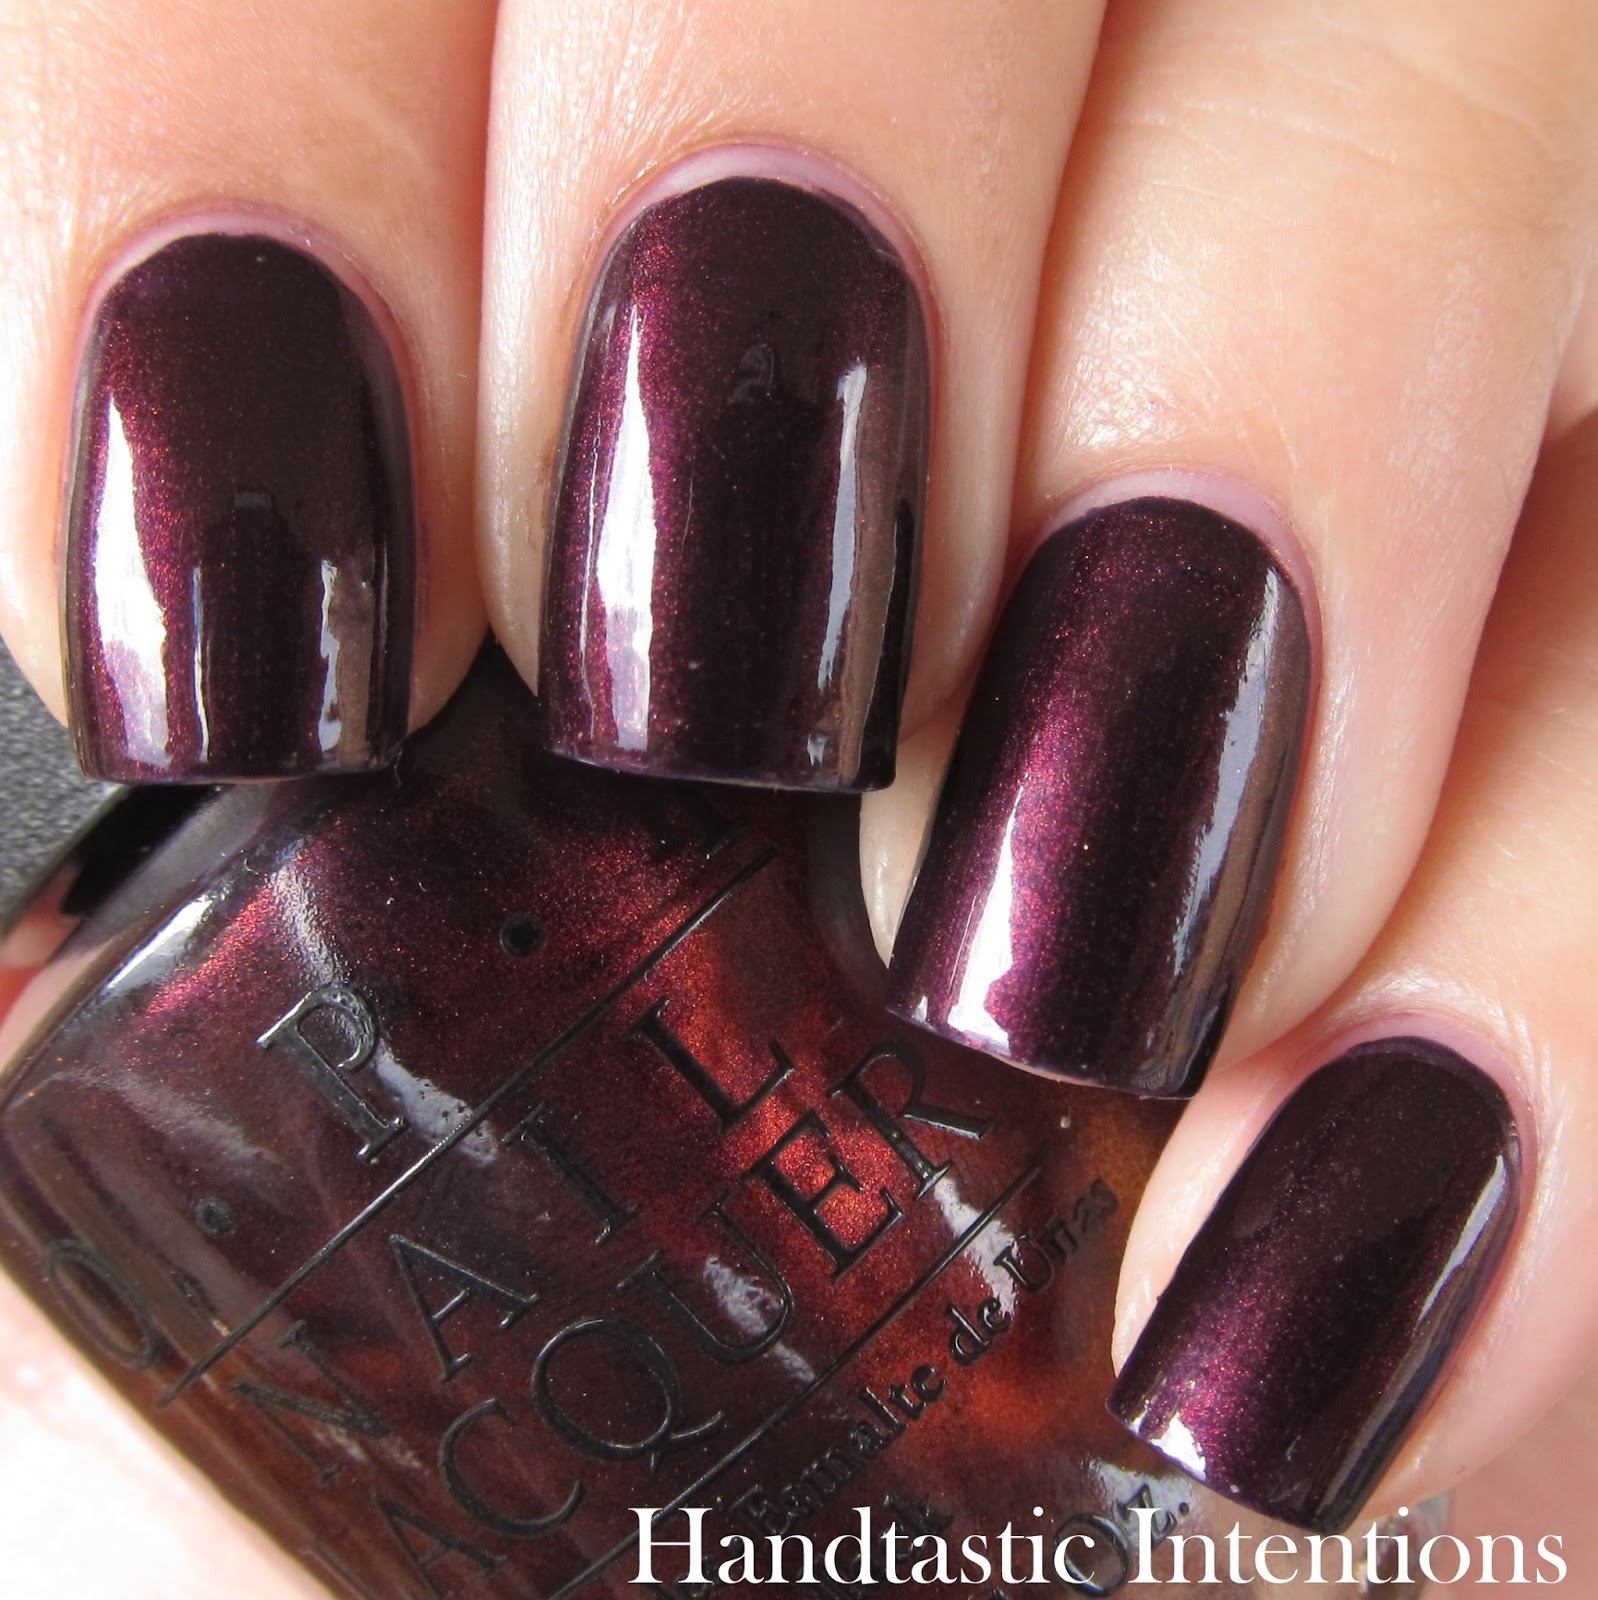 Handtastic Intentions: The Perfect Fall Color